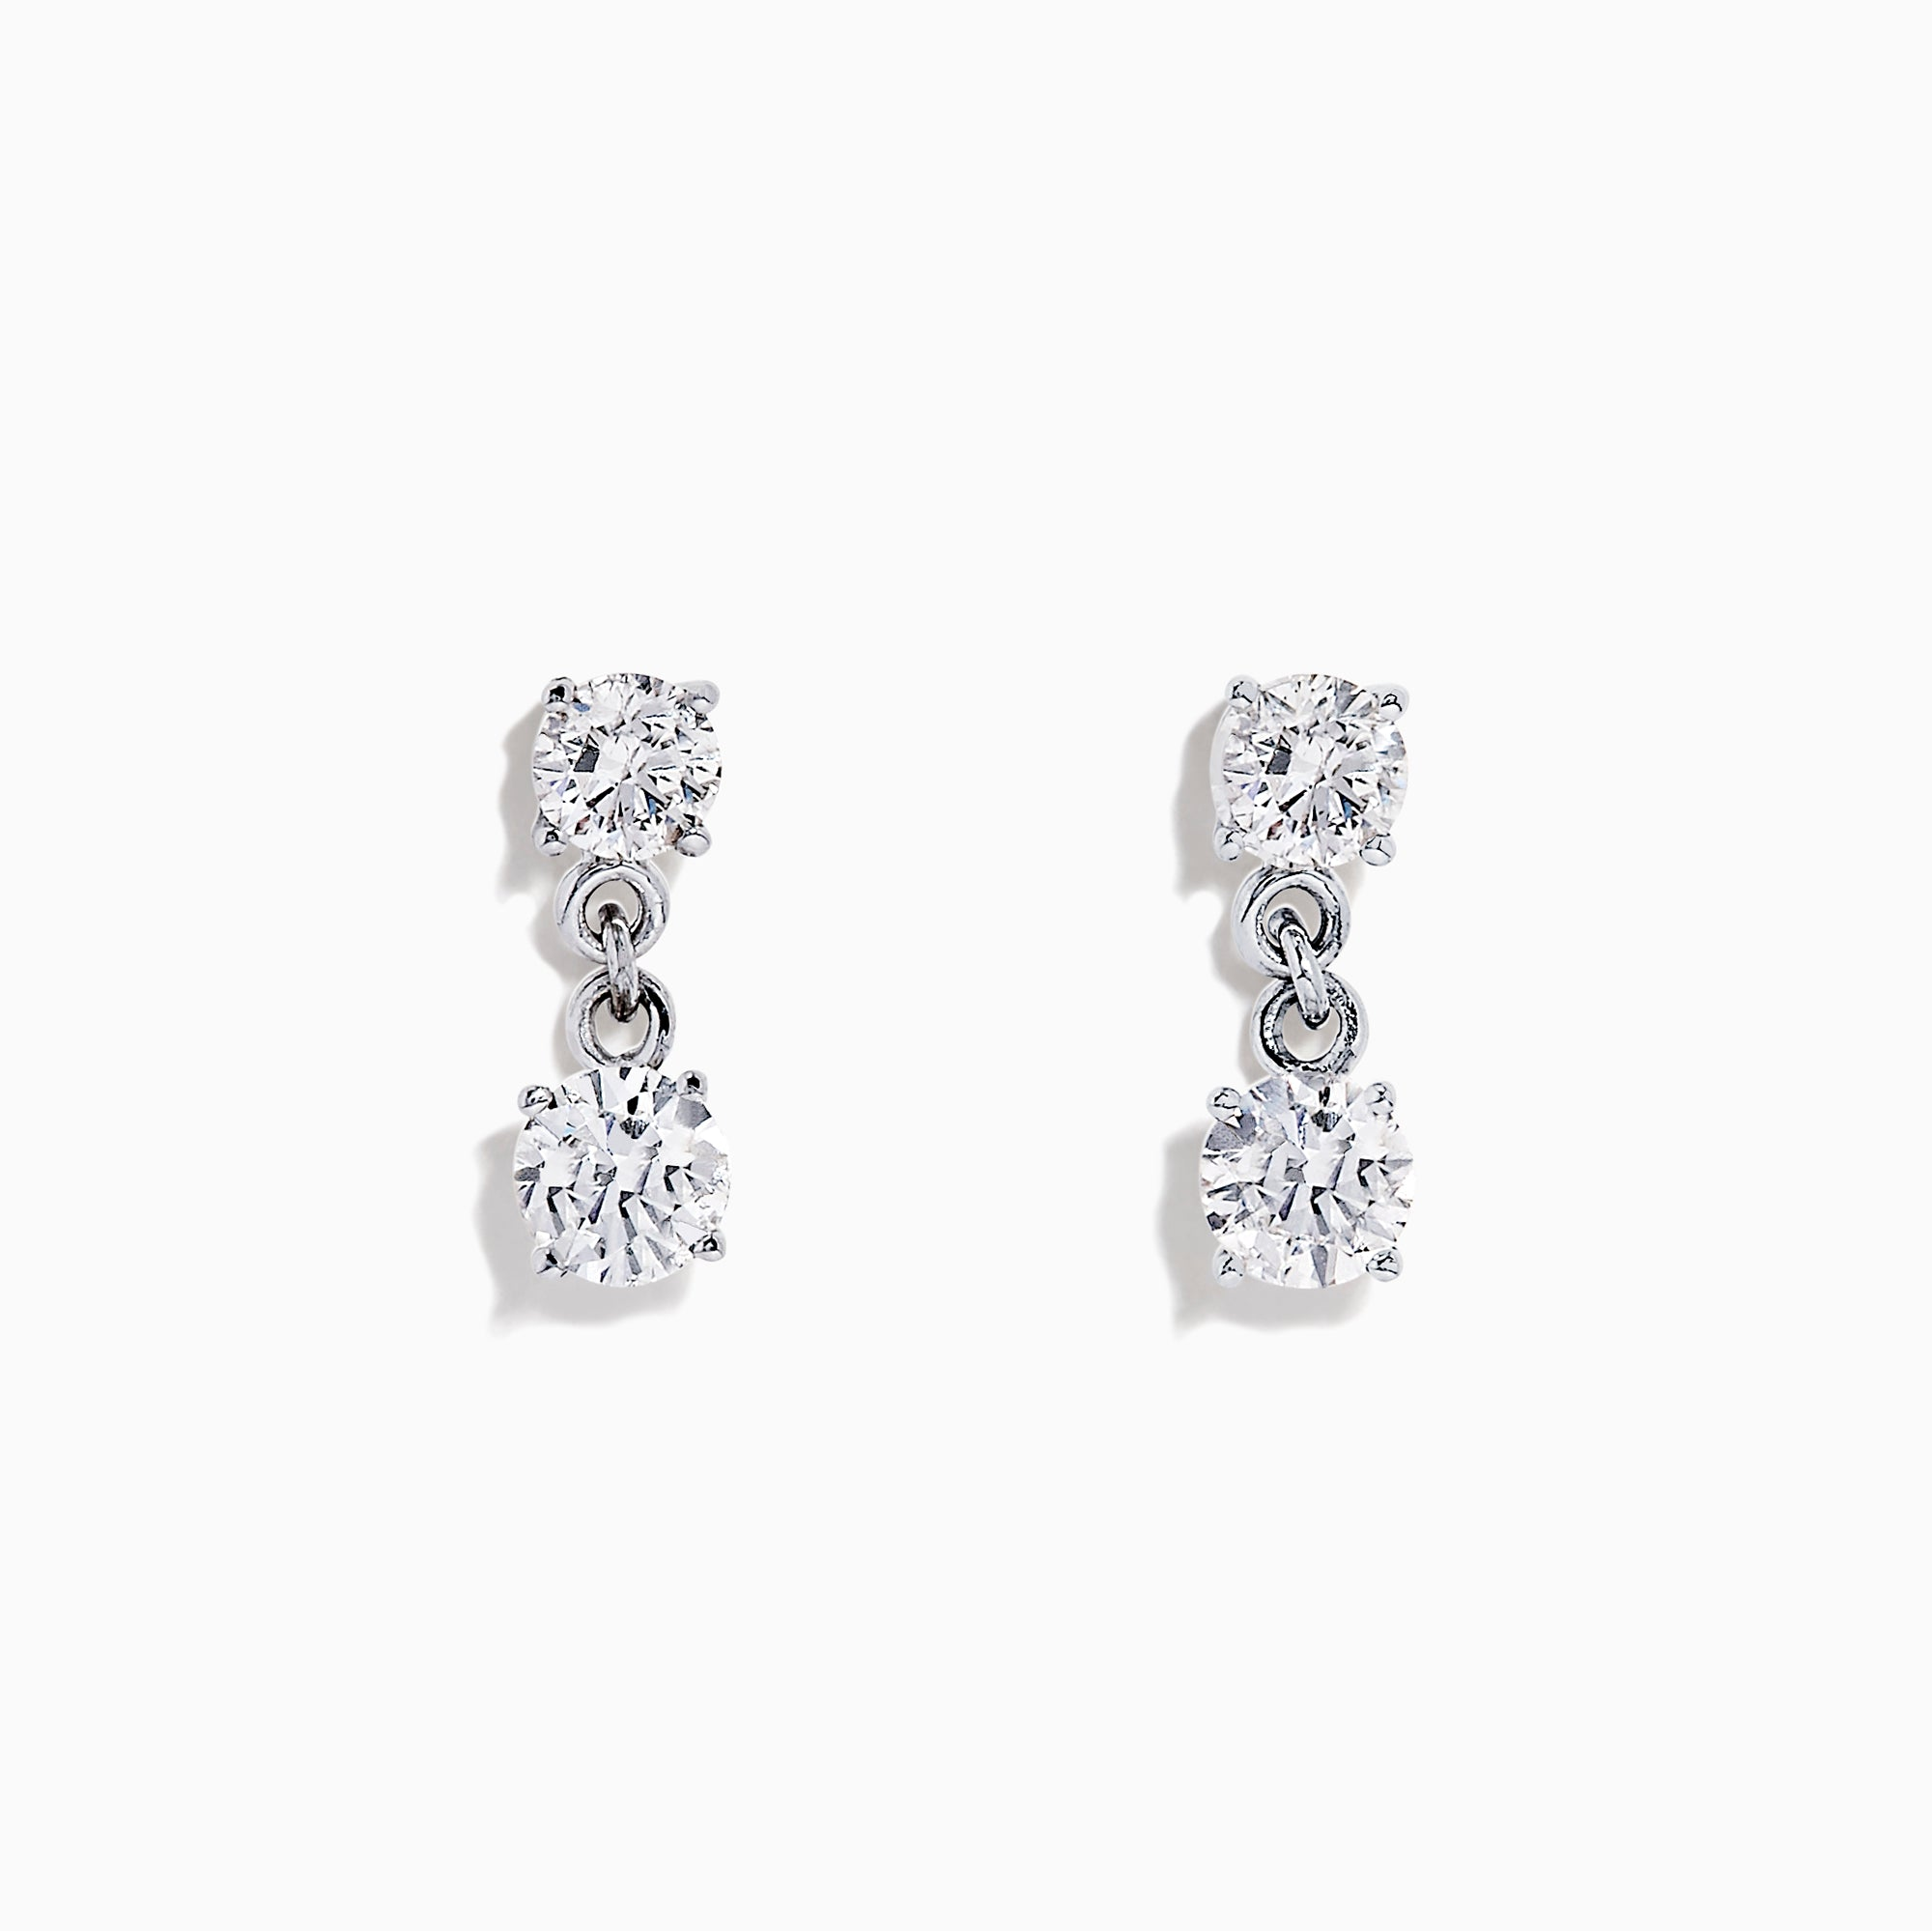 Effy 14K White Gold Diamond Earrings, 0.98 TCW